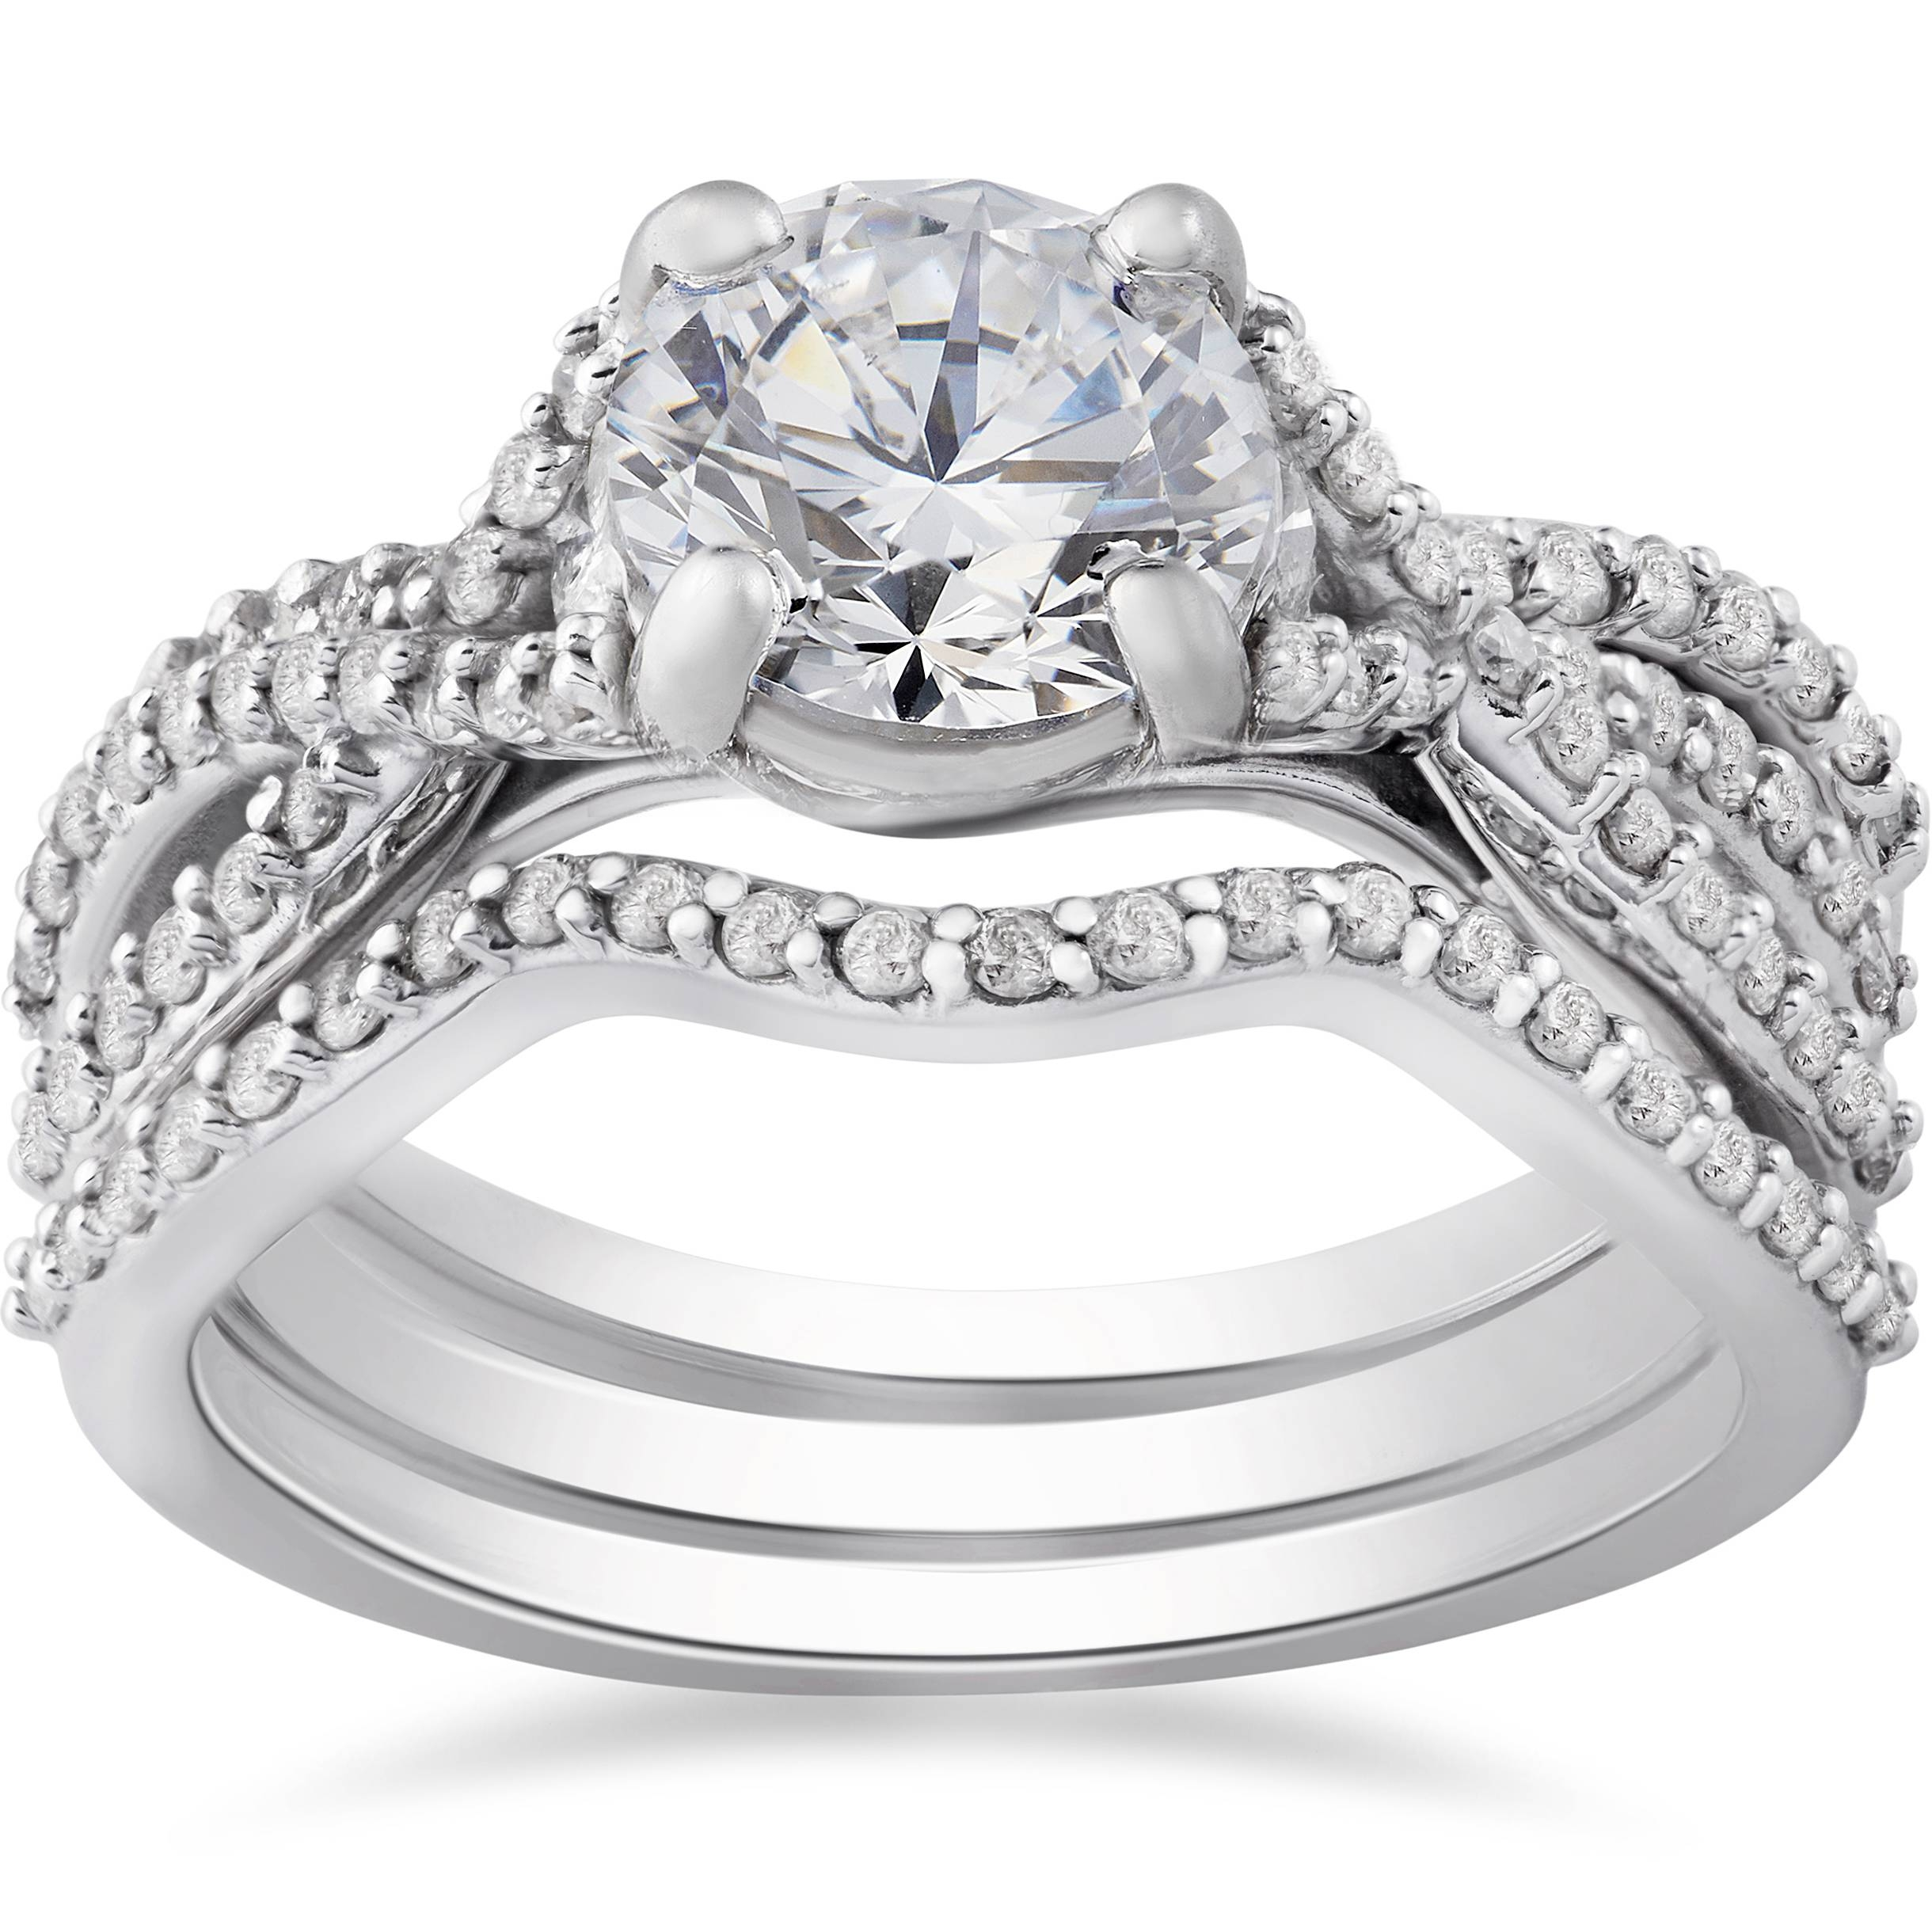 1 3/4Ct Twist Diamond Engagement Ring & Matching Wedding Band Set Regarding Matching Engagement And Wedding Bands (View 2 of 15)